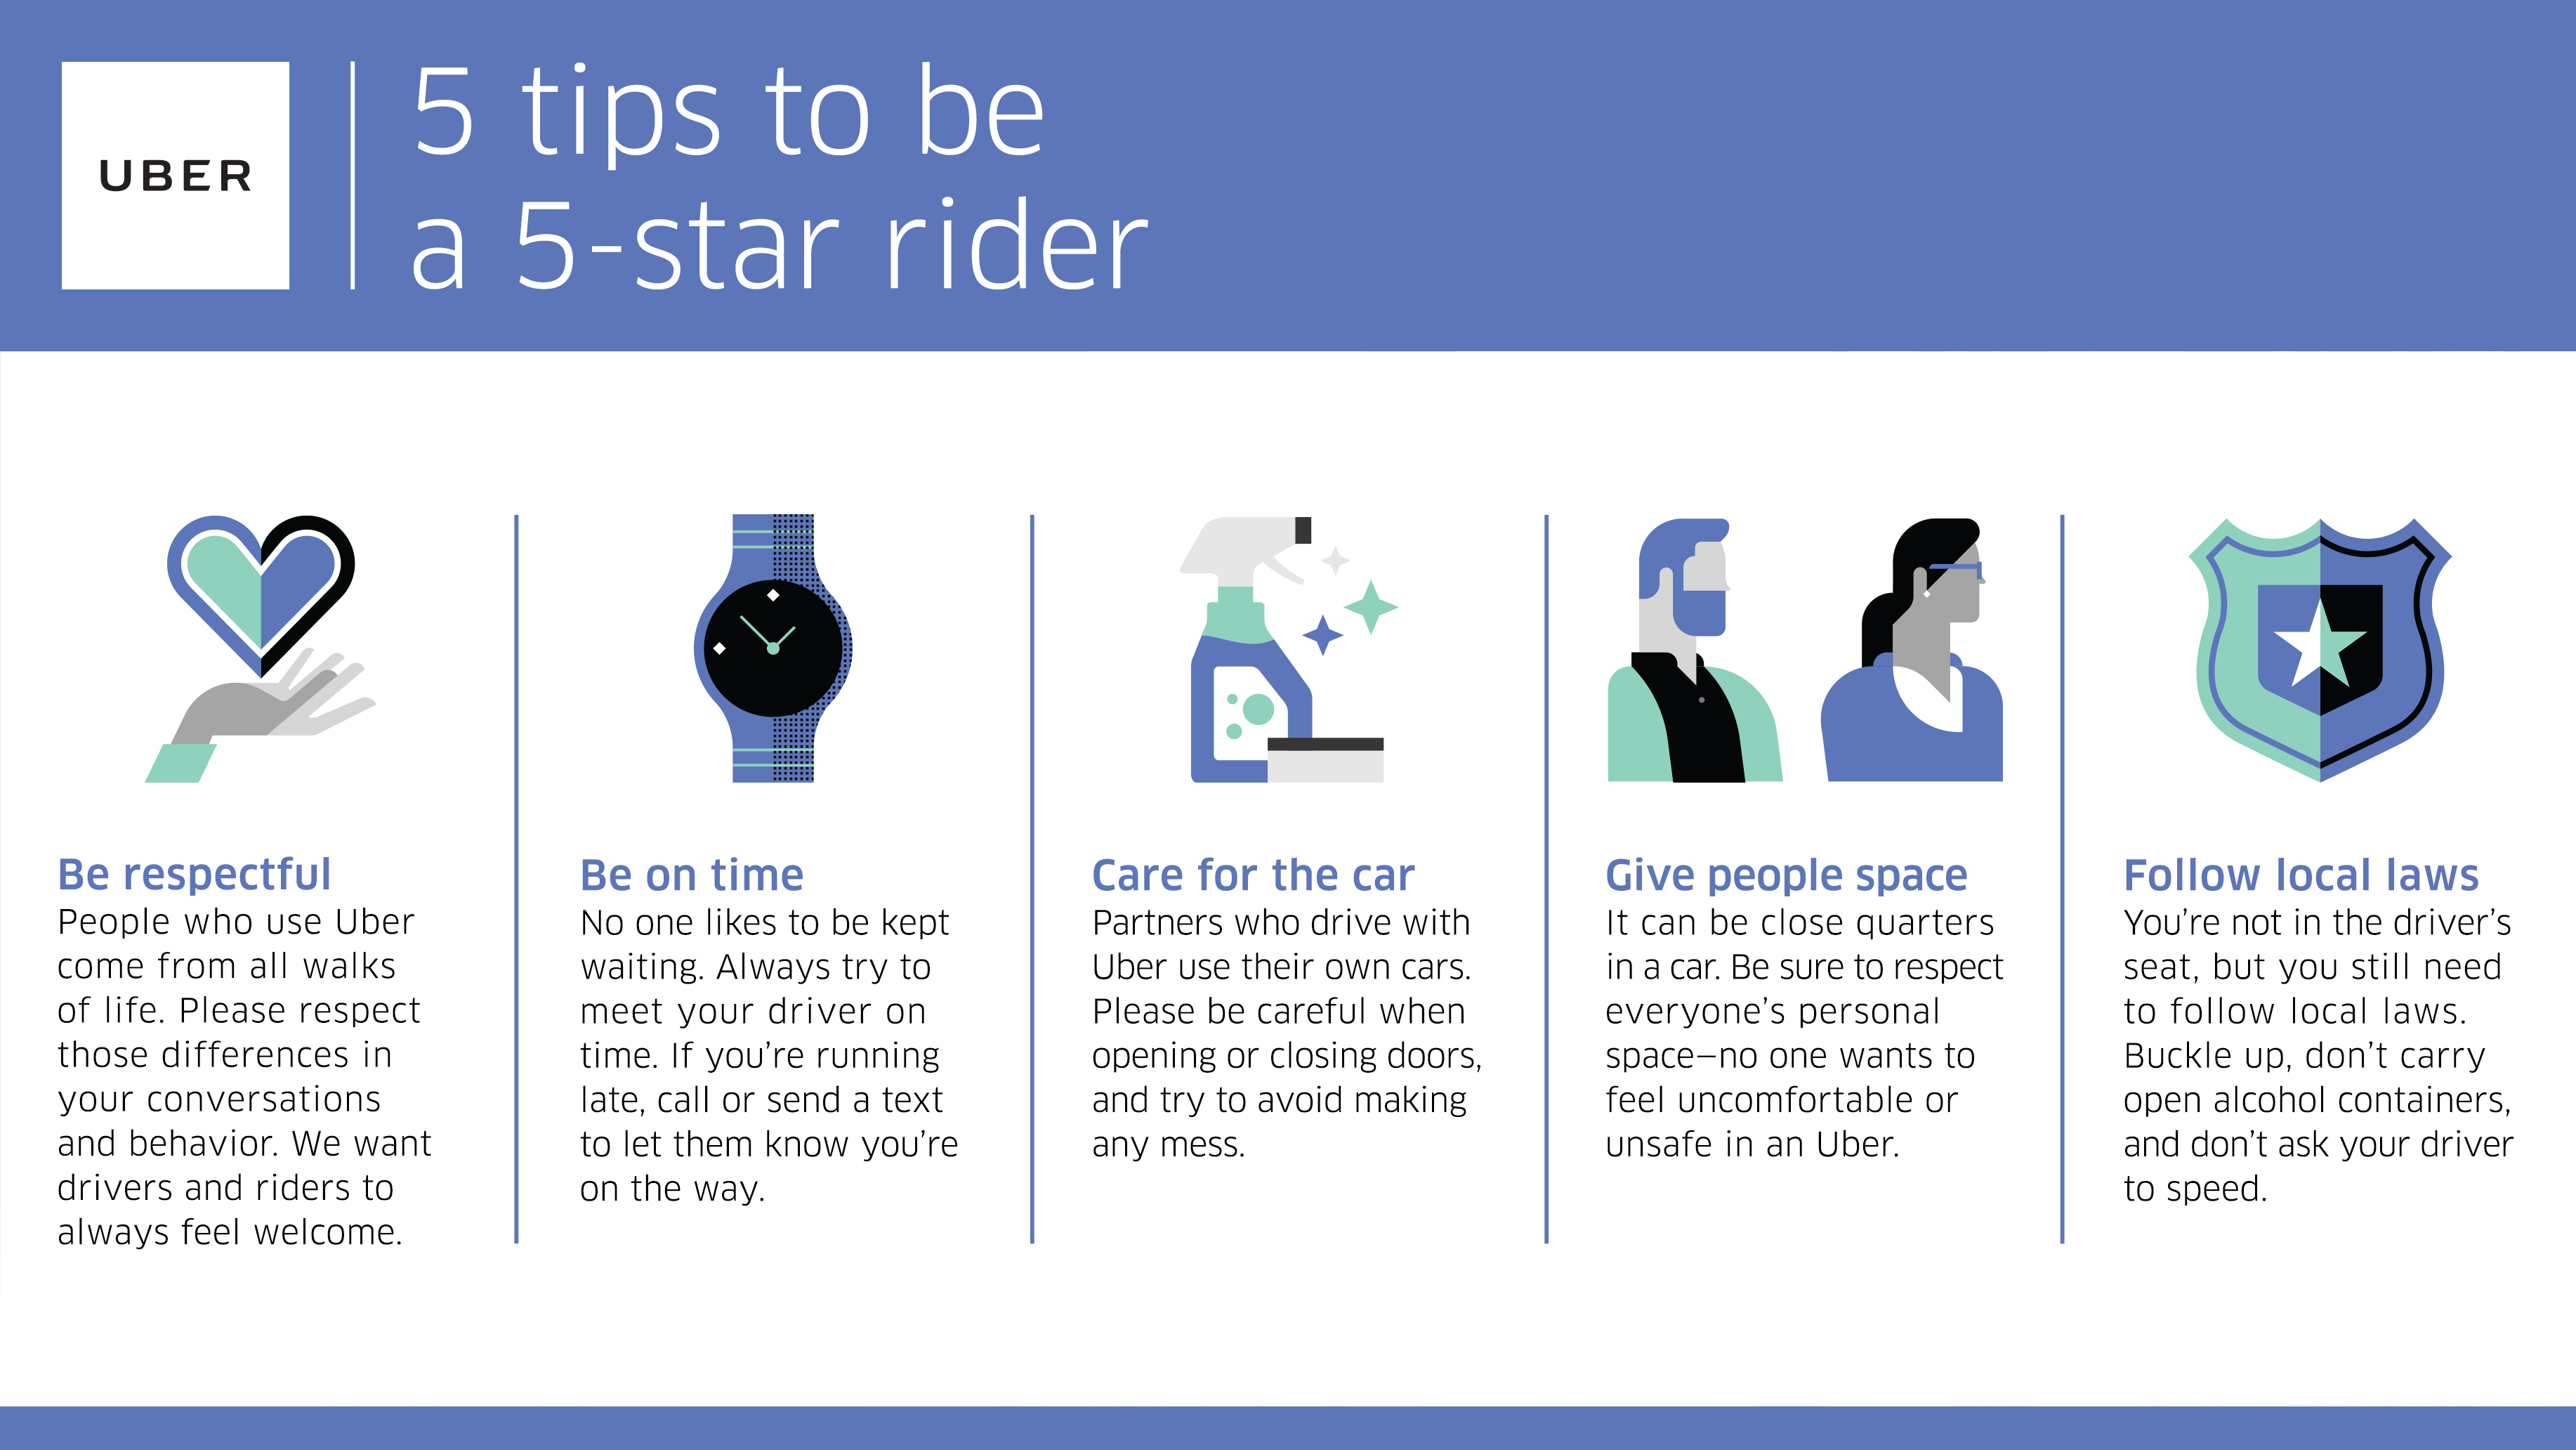 Uber's simplified rider policy in the form of tips for users.